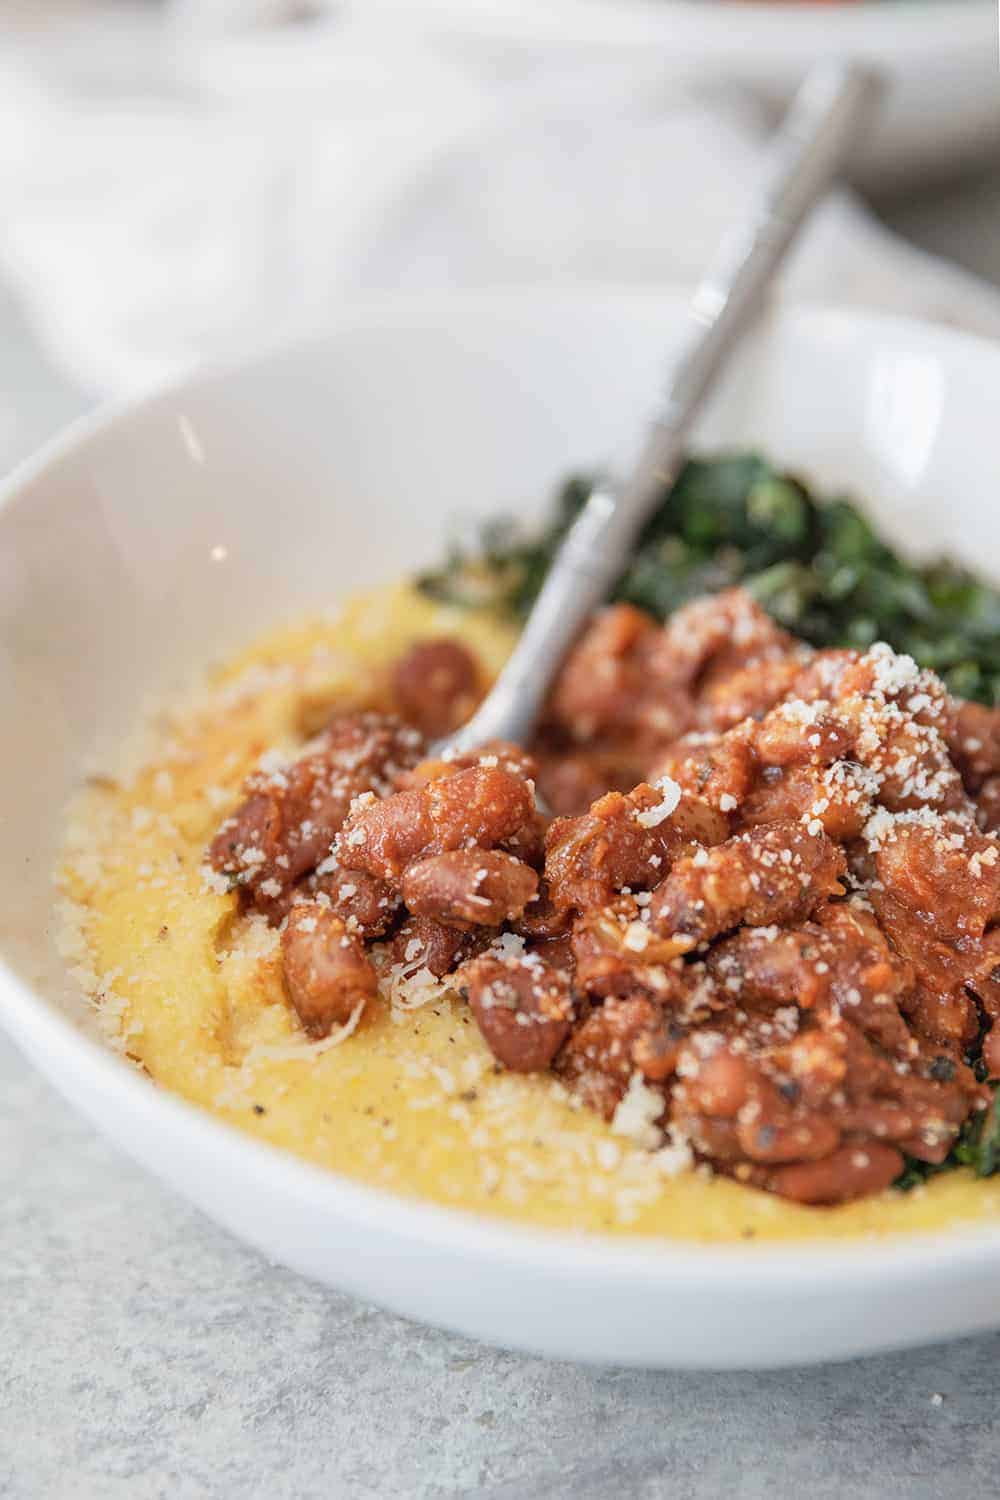 vegan chili beans with polenta